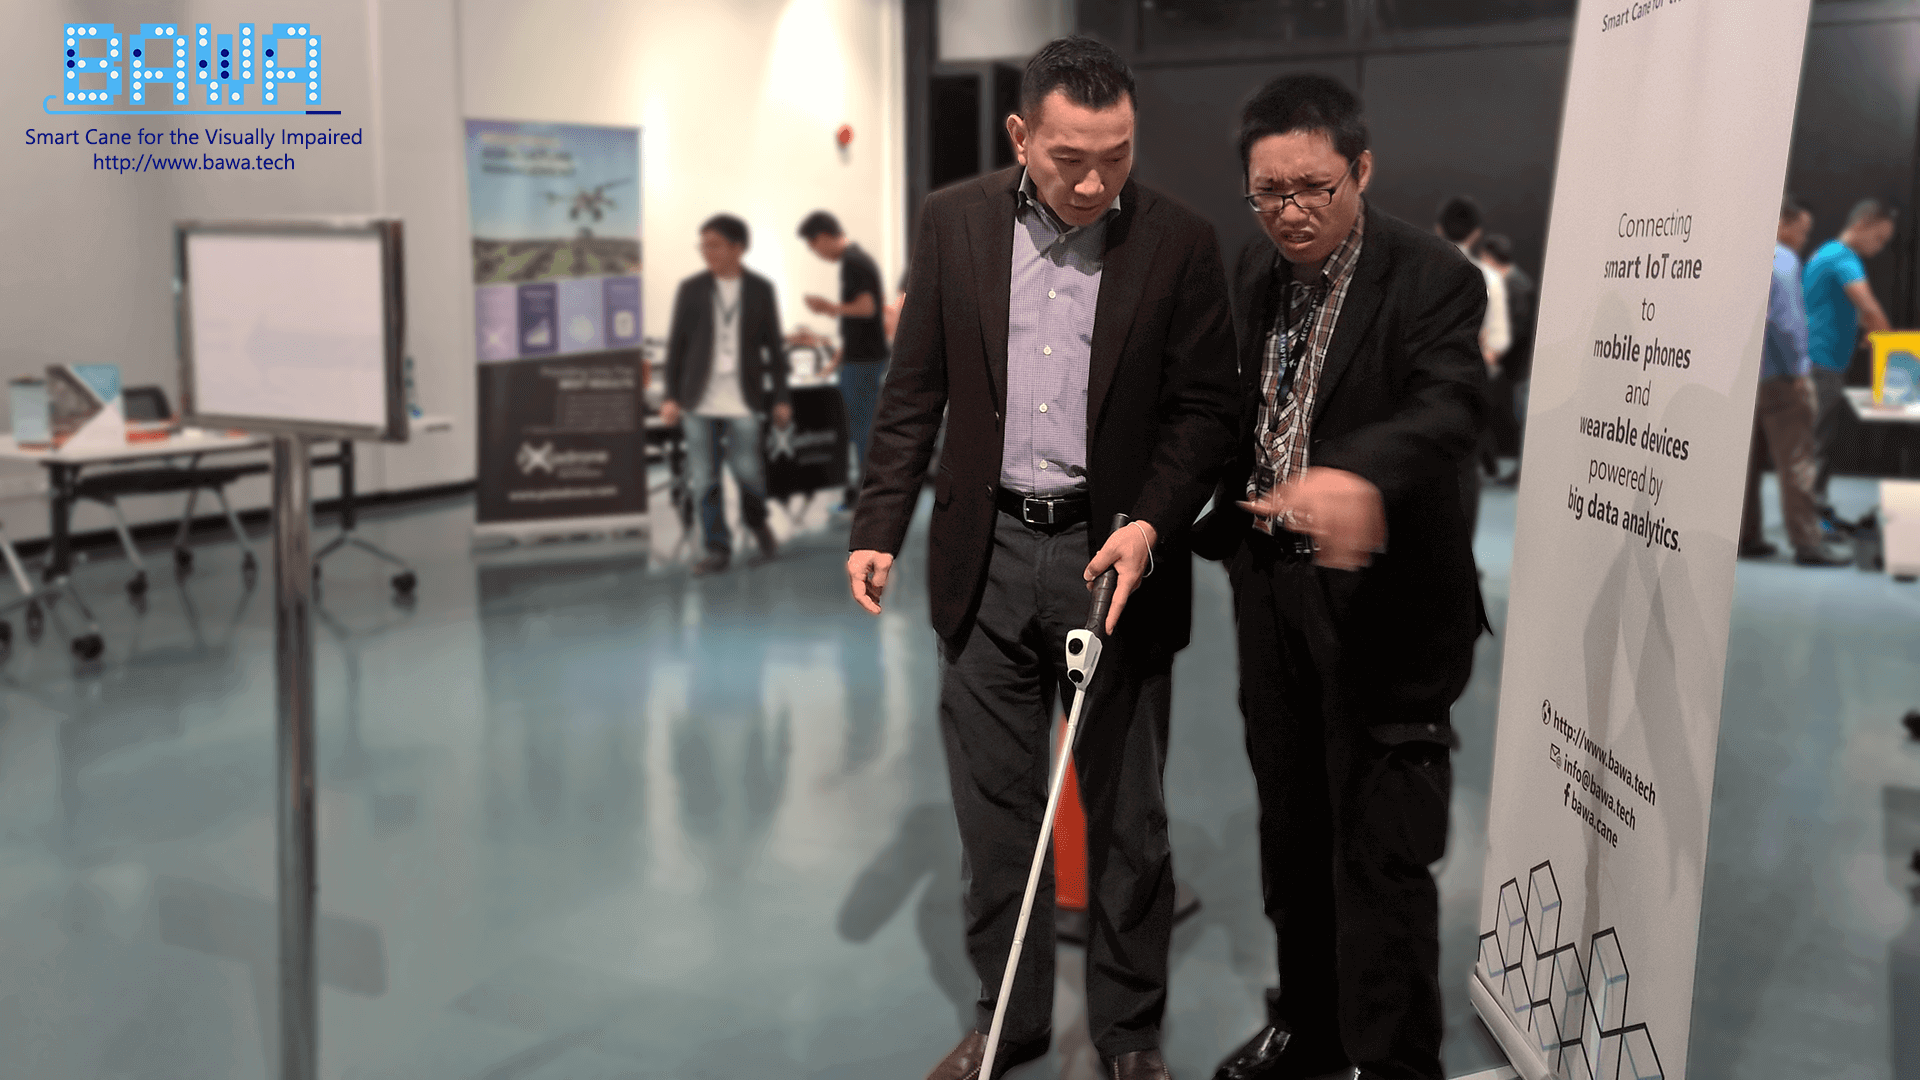 Dato Loh Yuen Tuck from The IoT Solutions Sdn Bhd listens on while Daniel Vong is explaining how to use a white cane.